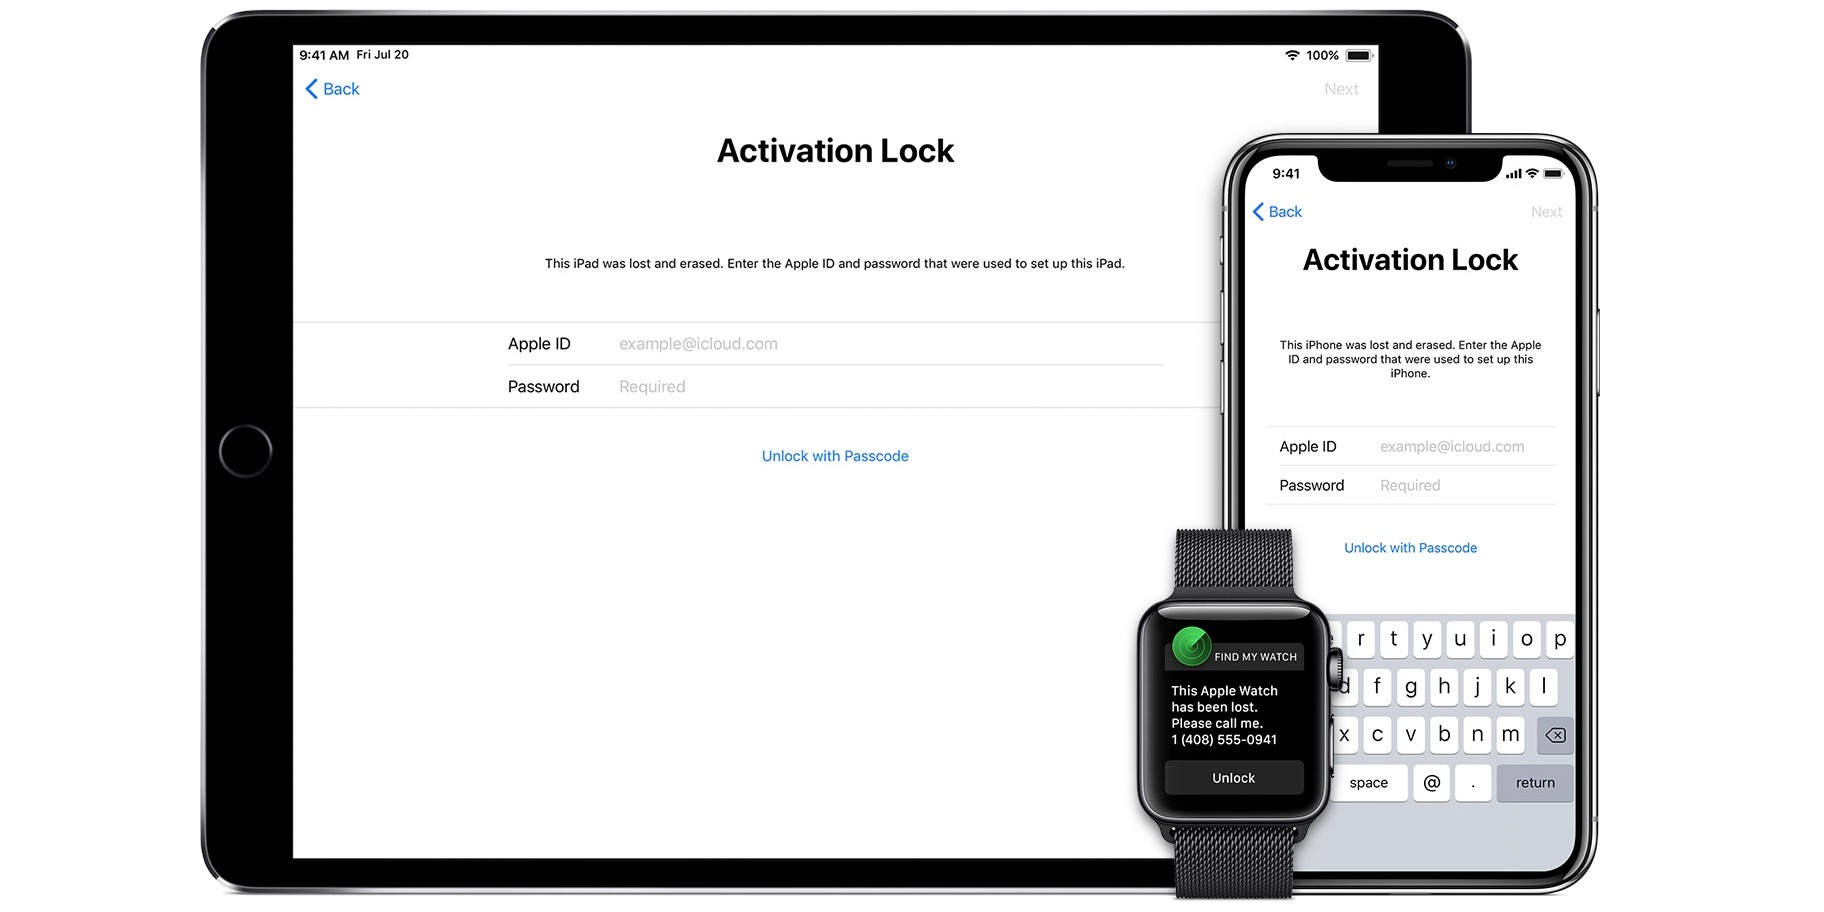 How to get rid of activation lock on ipad mini